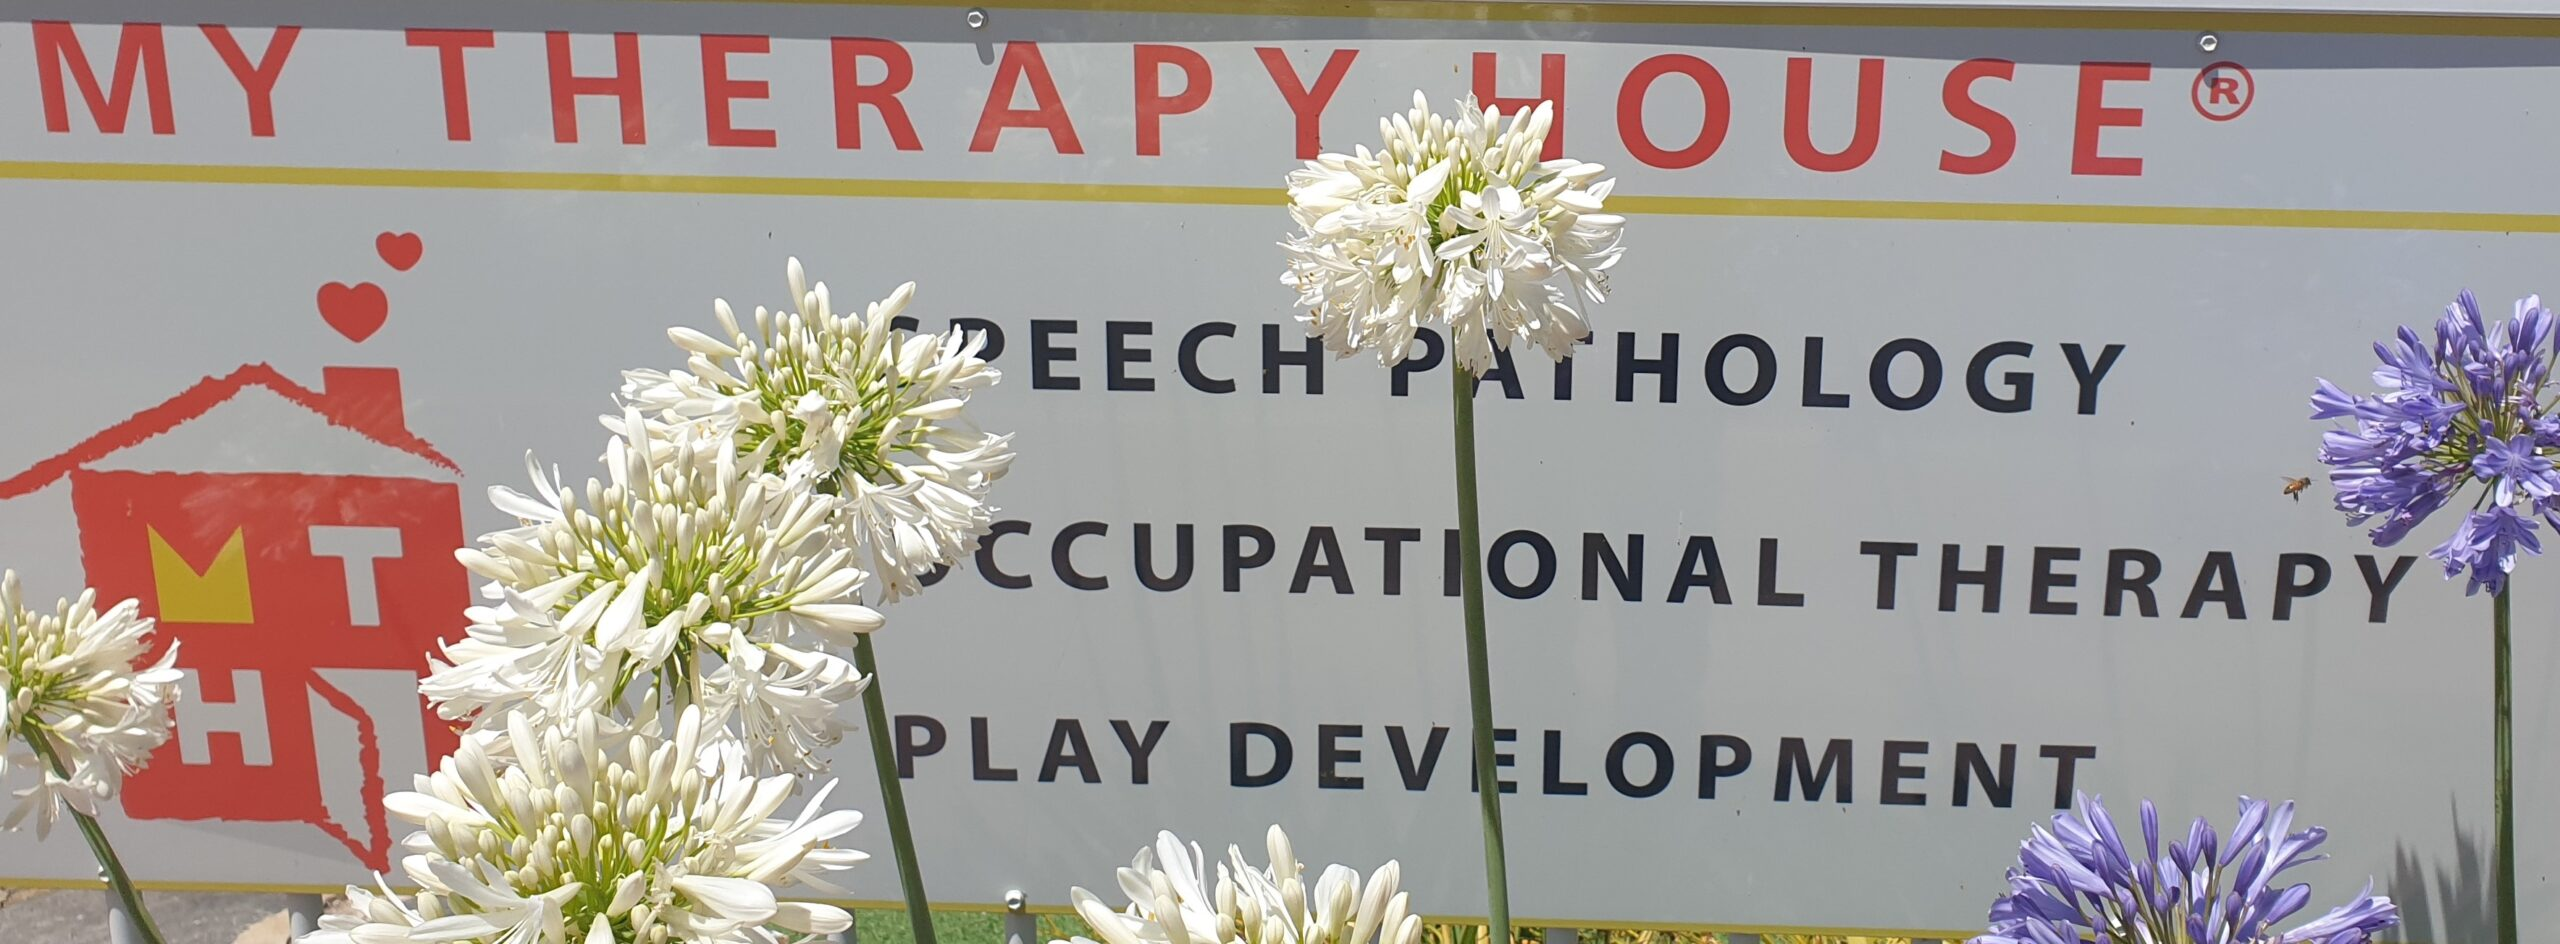 My Therapy House sign with flowers